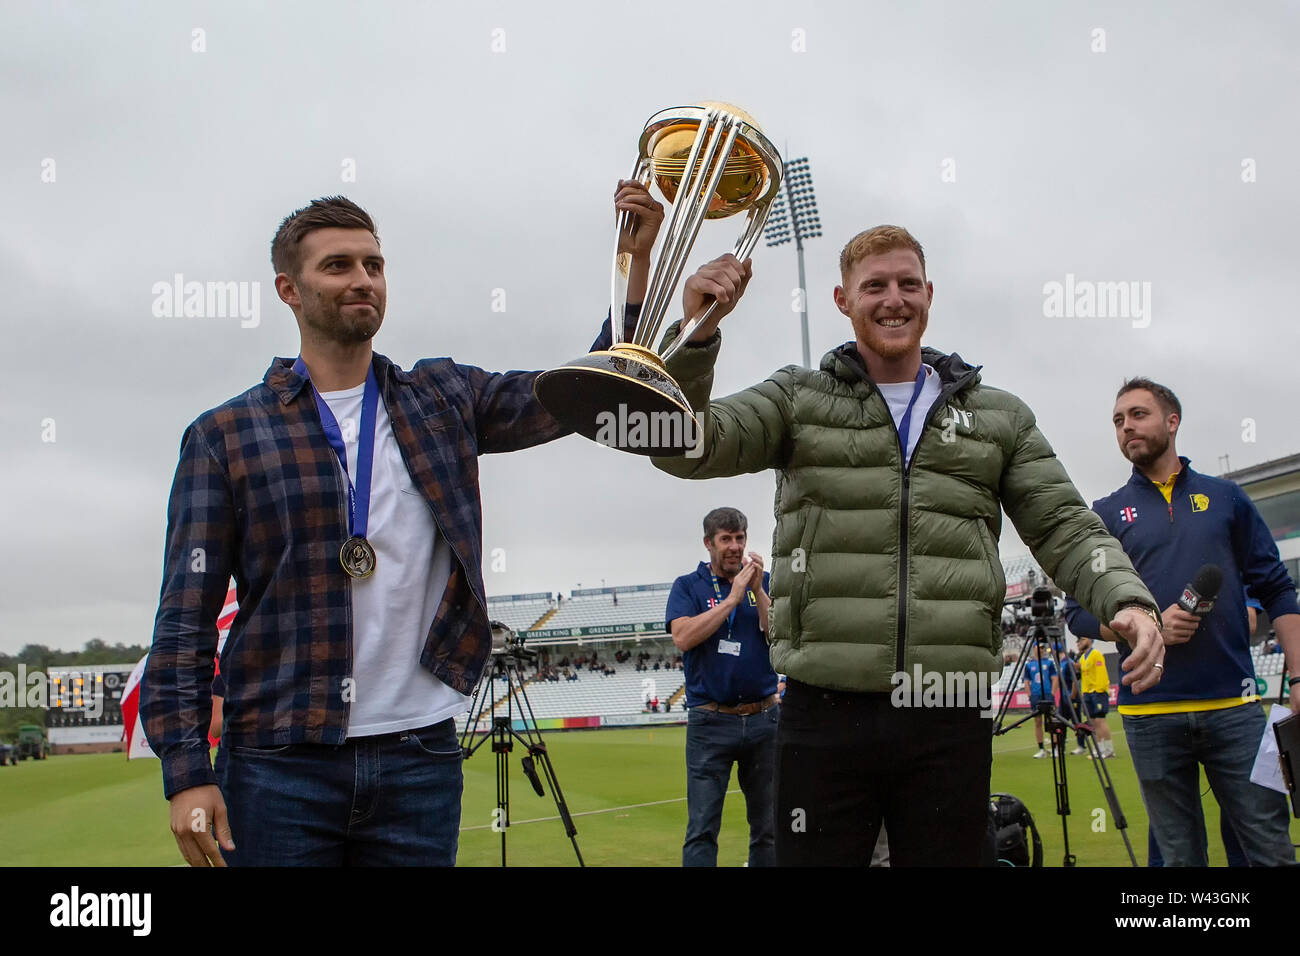 CHESTER LE STREET, ENGLAND 19th July 2019. 2019. England and Durham cricketers Ben Stokes and Mark Wood parade with the Cricket World Cup during the Vitality T20 Blast match between Durham County Cricket Club and Northamptonshire County Cricket Club at Emirates Riverside, Chester le Street on Friday 19th July 2019. (Credit: Mark Fletcher   MI News ) Credit: MI News & Sport /Alamy Live News - Stock Image